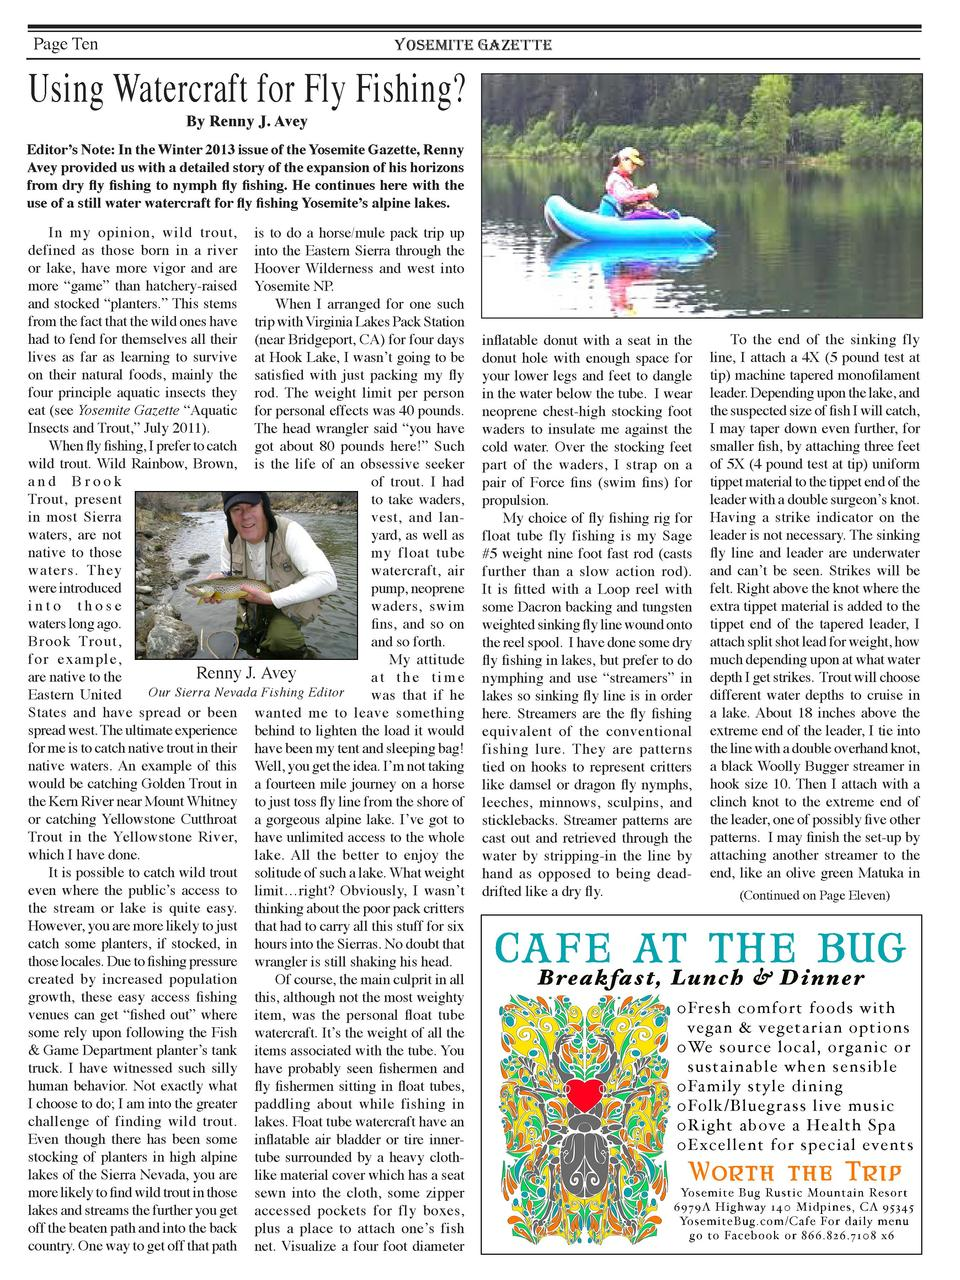 Page Ten  YOSEMITE GAZETTE  Using Watercraft for Fly Fishing  By Renny J. Avey  Editor   s Note  In the Winter 2013 issue ...